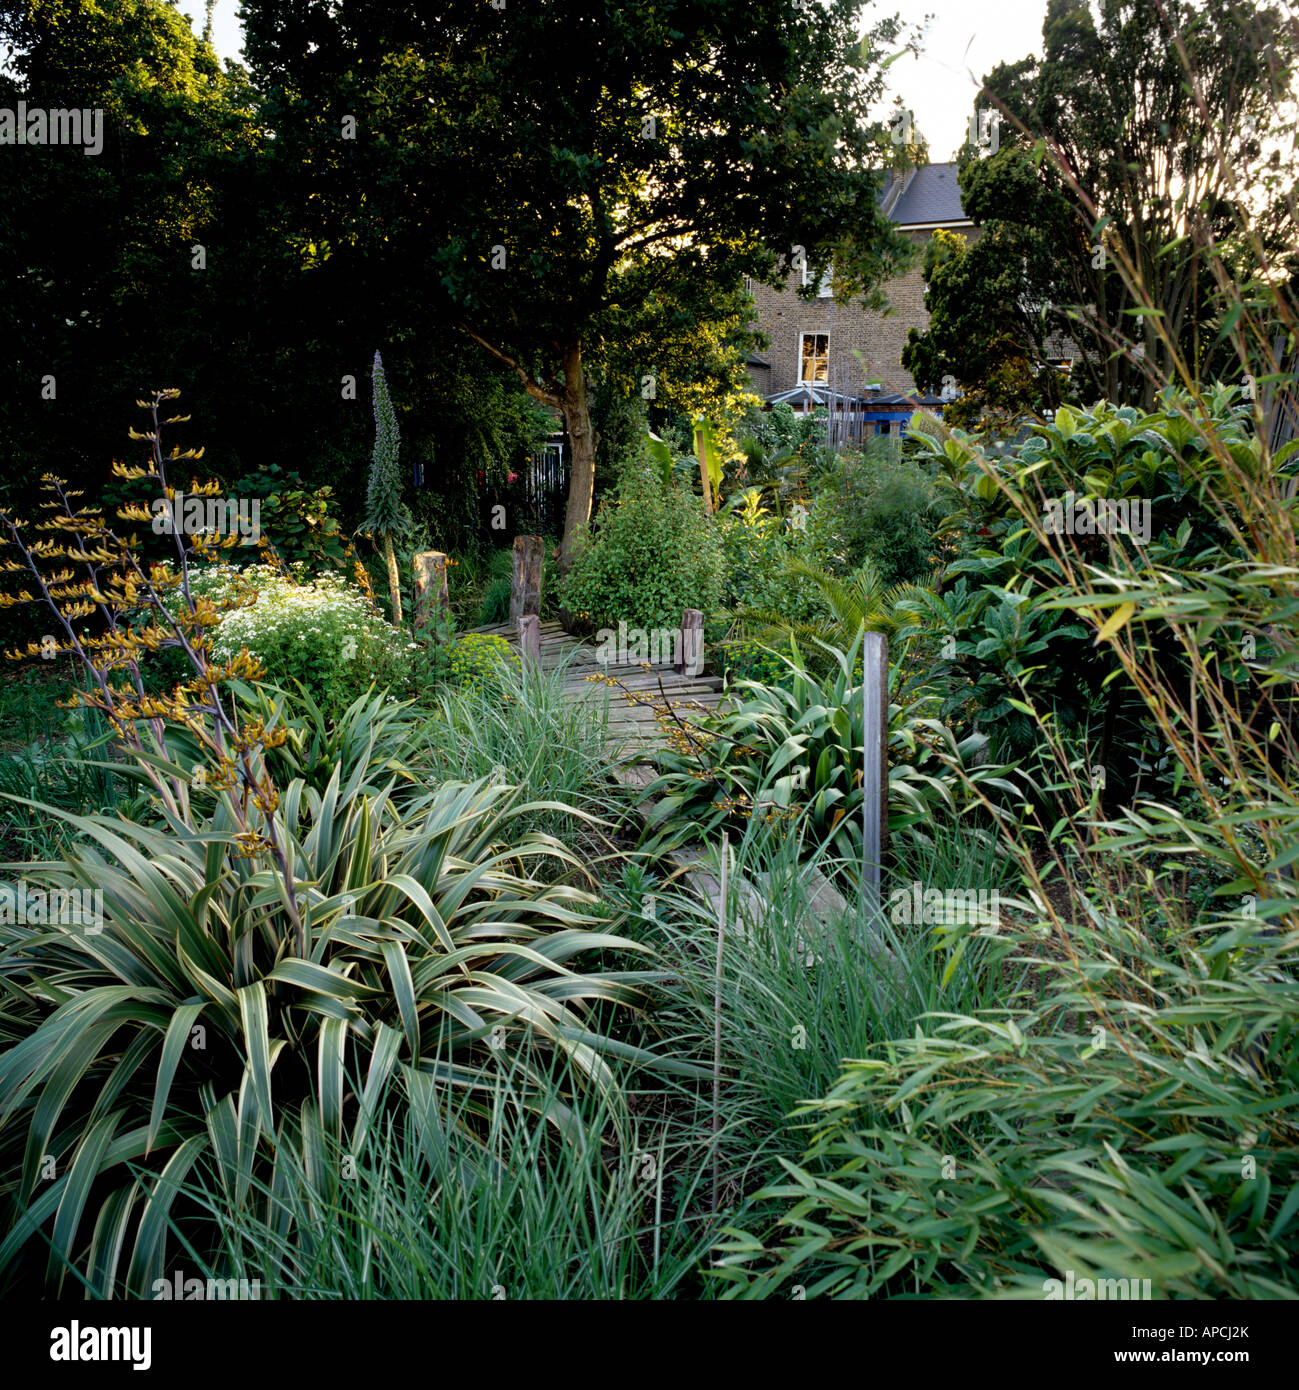 London garden planted with yucca and low growing New Zealand grasses - Stock Image